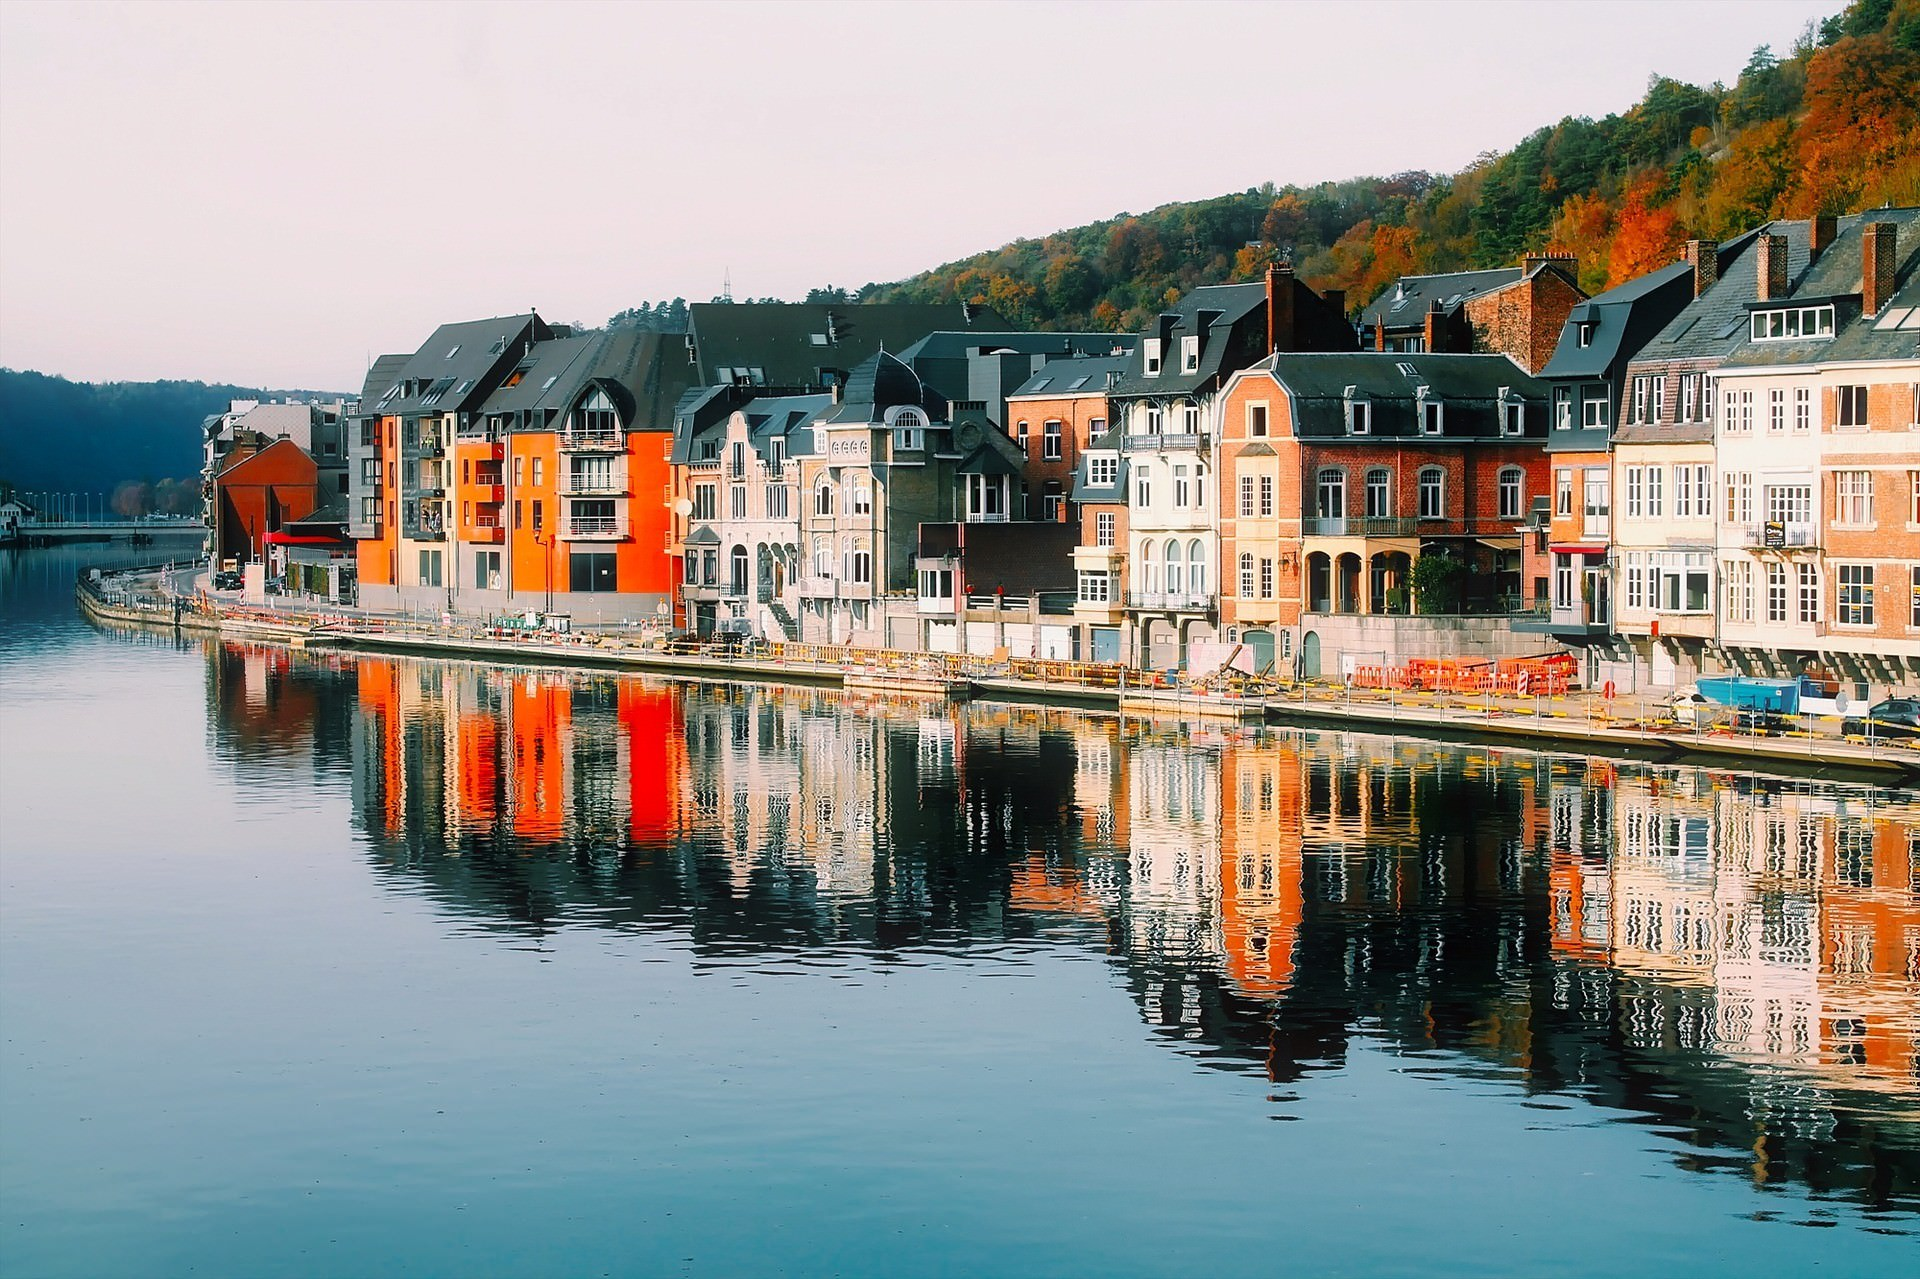 Houses in Dinant Belgium